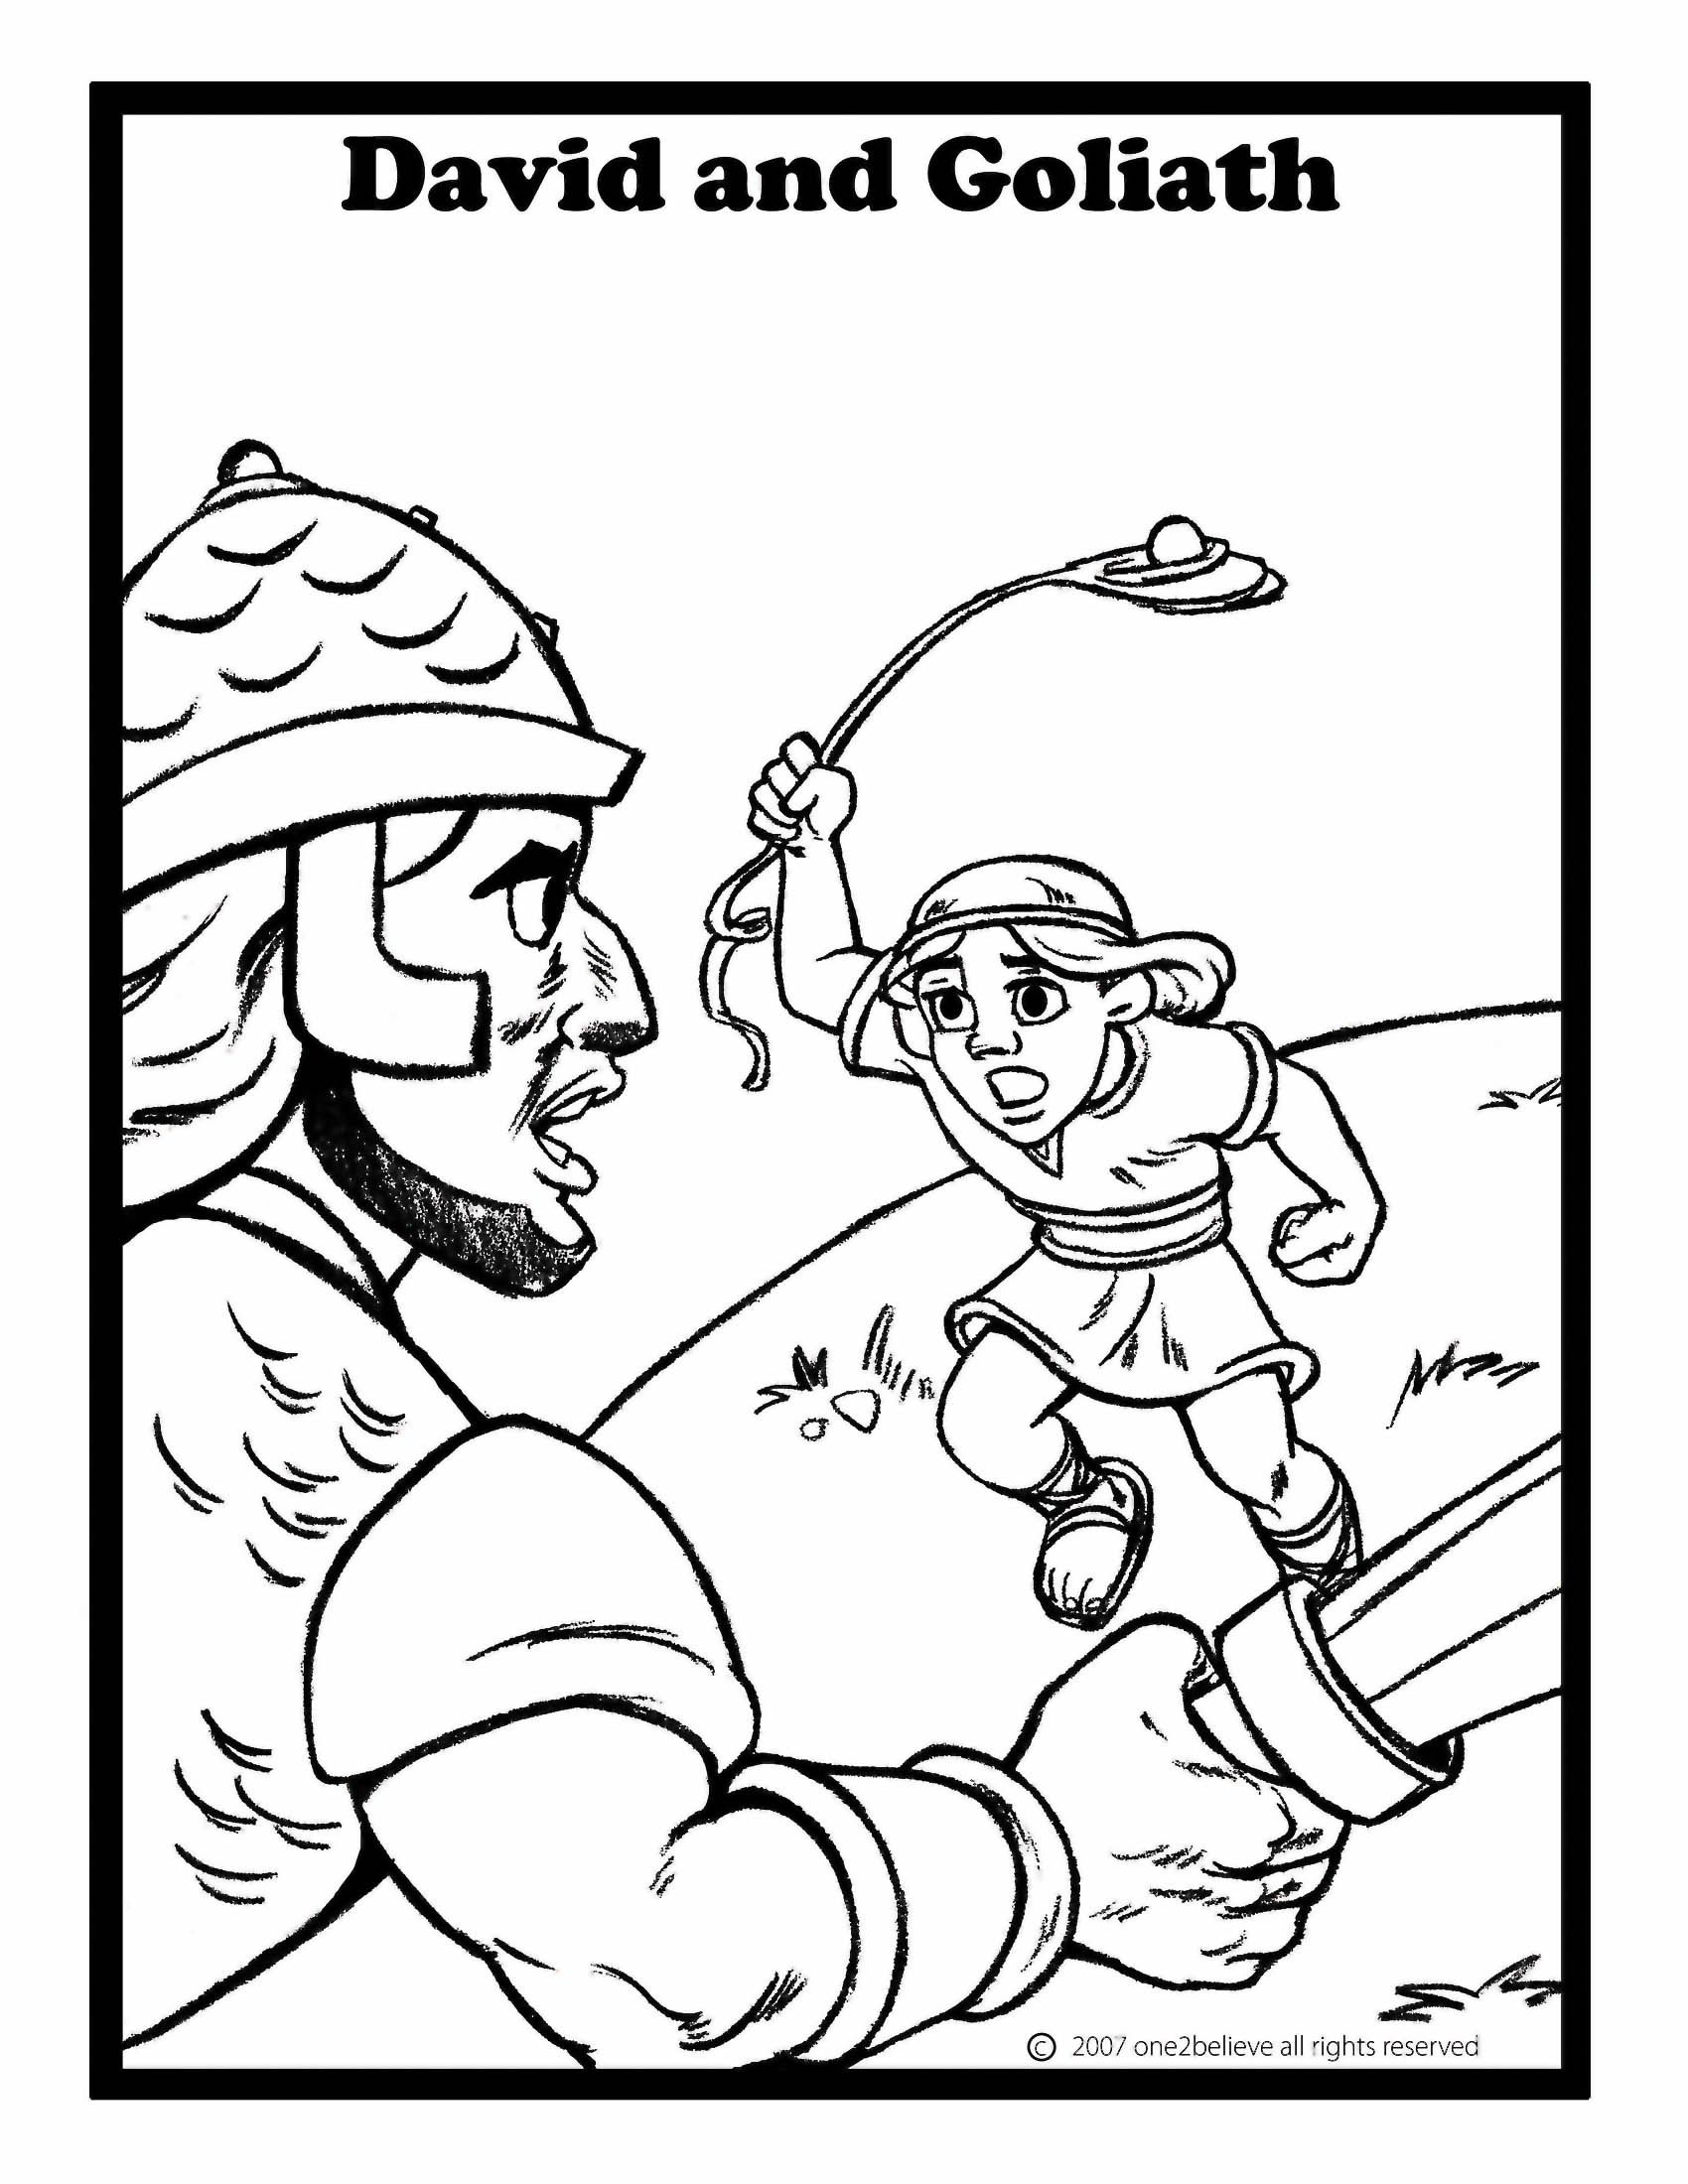 David And Goliath Coloring Page 2019 Educative Printable David And Goliath Superhero Coloring Pages Superhero Coloring